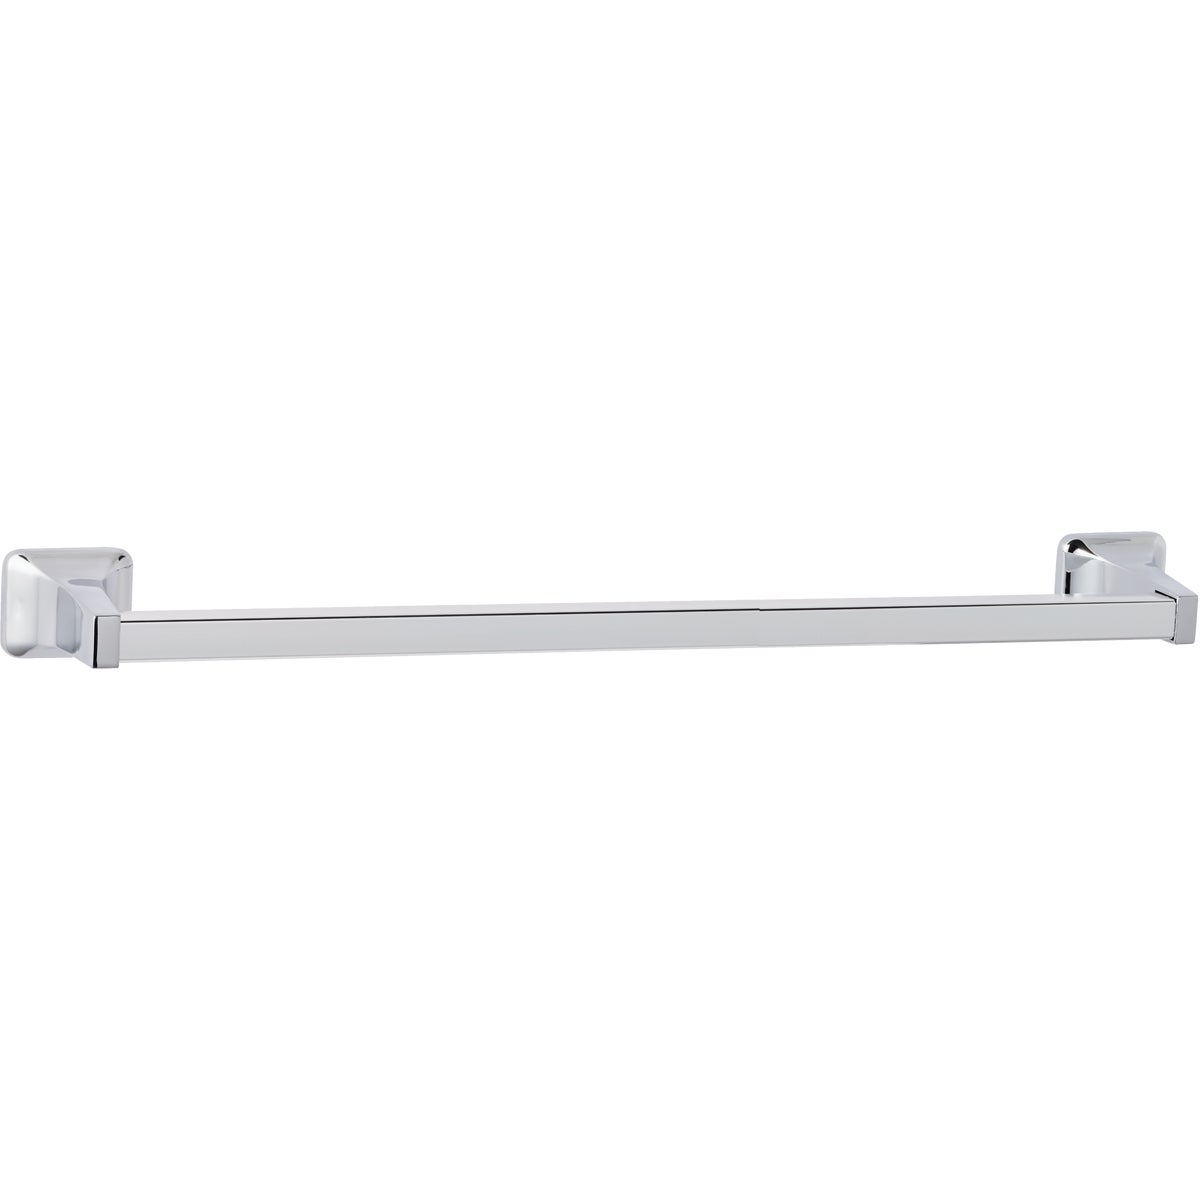 "24"" CHROME TOWEL BAR - 409285 by Do it Best"